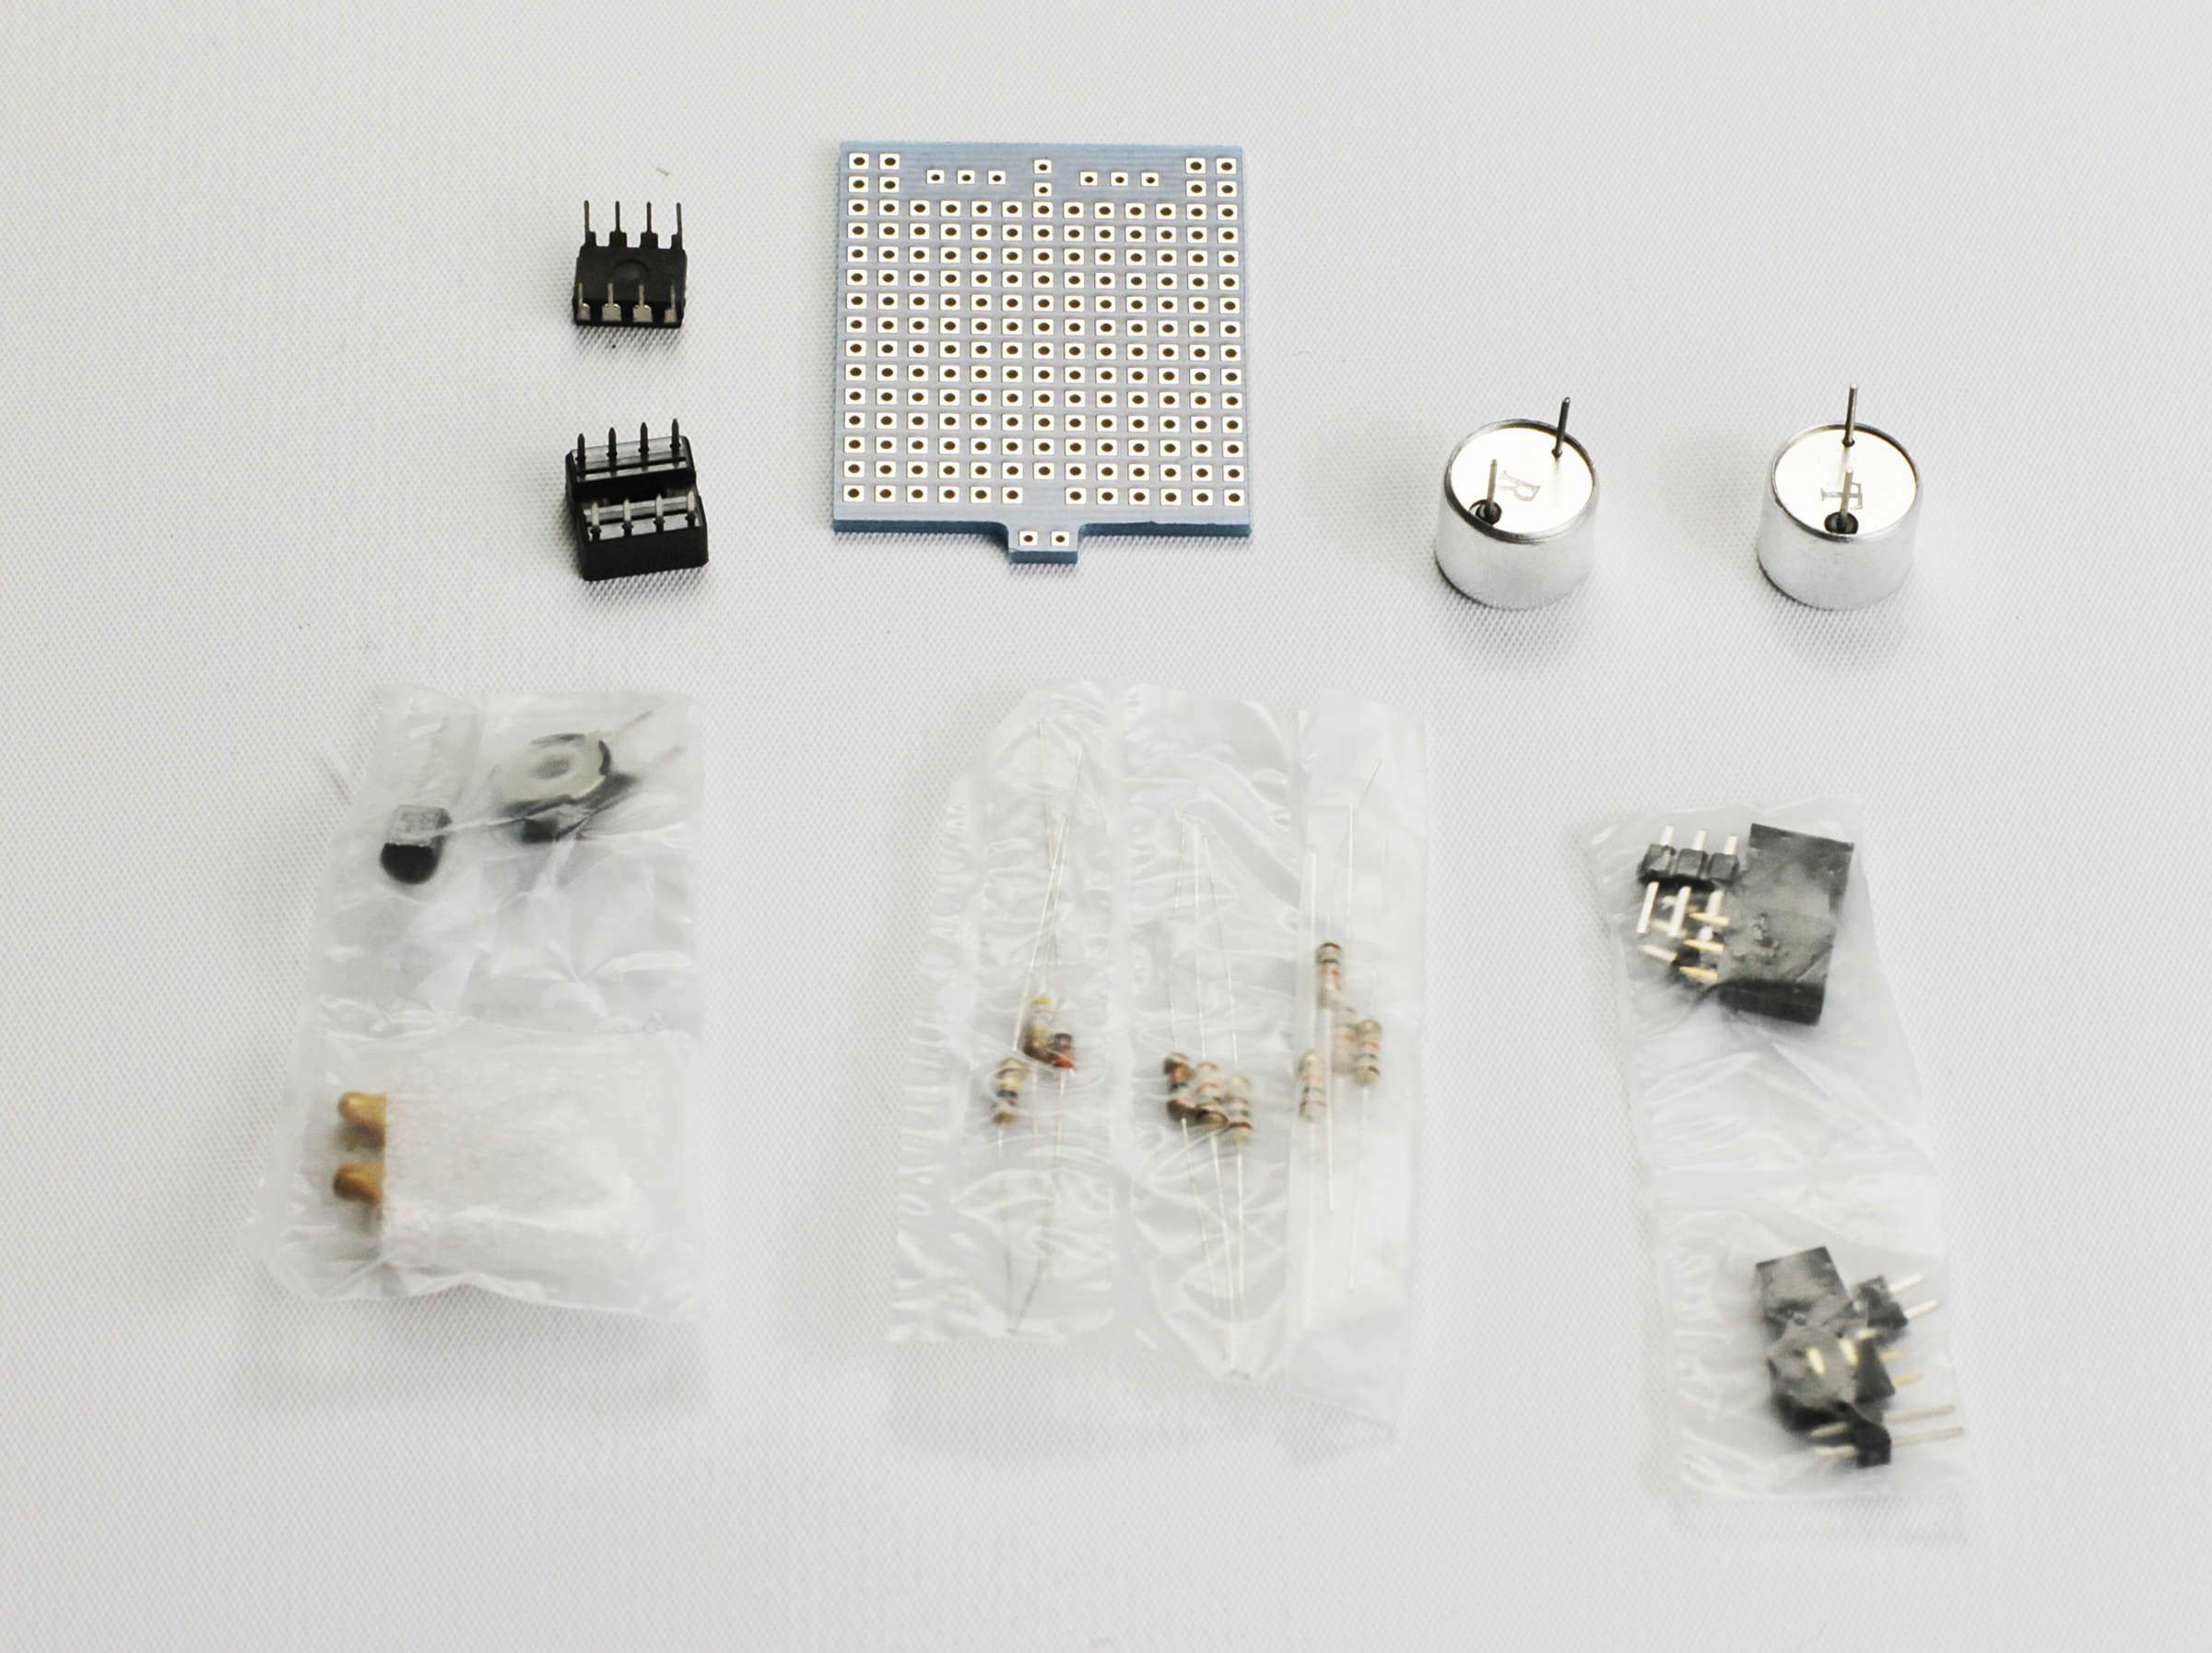 Global Specialties ARX-ULT ARX Ultrasound Distance Measurement Kit Photo